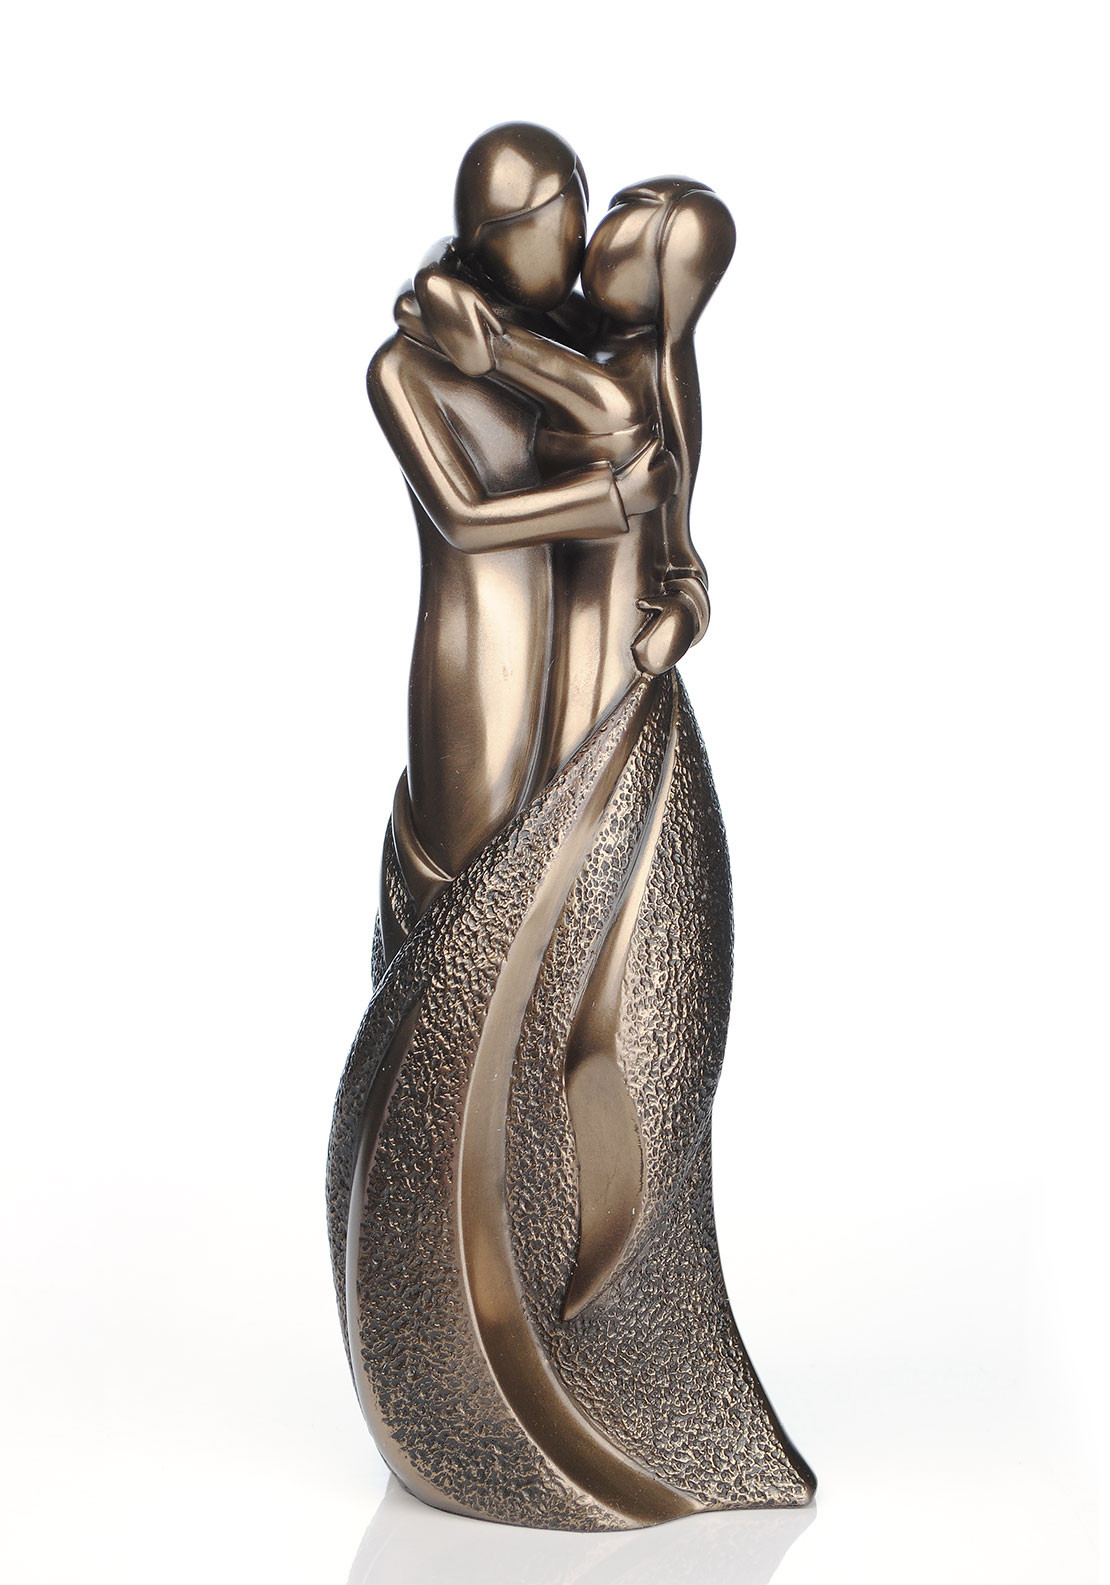 Genesis The Lovers Sculpture Ornament